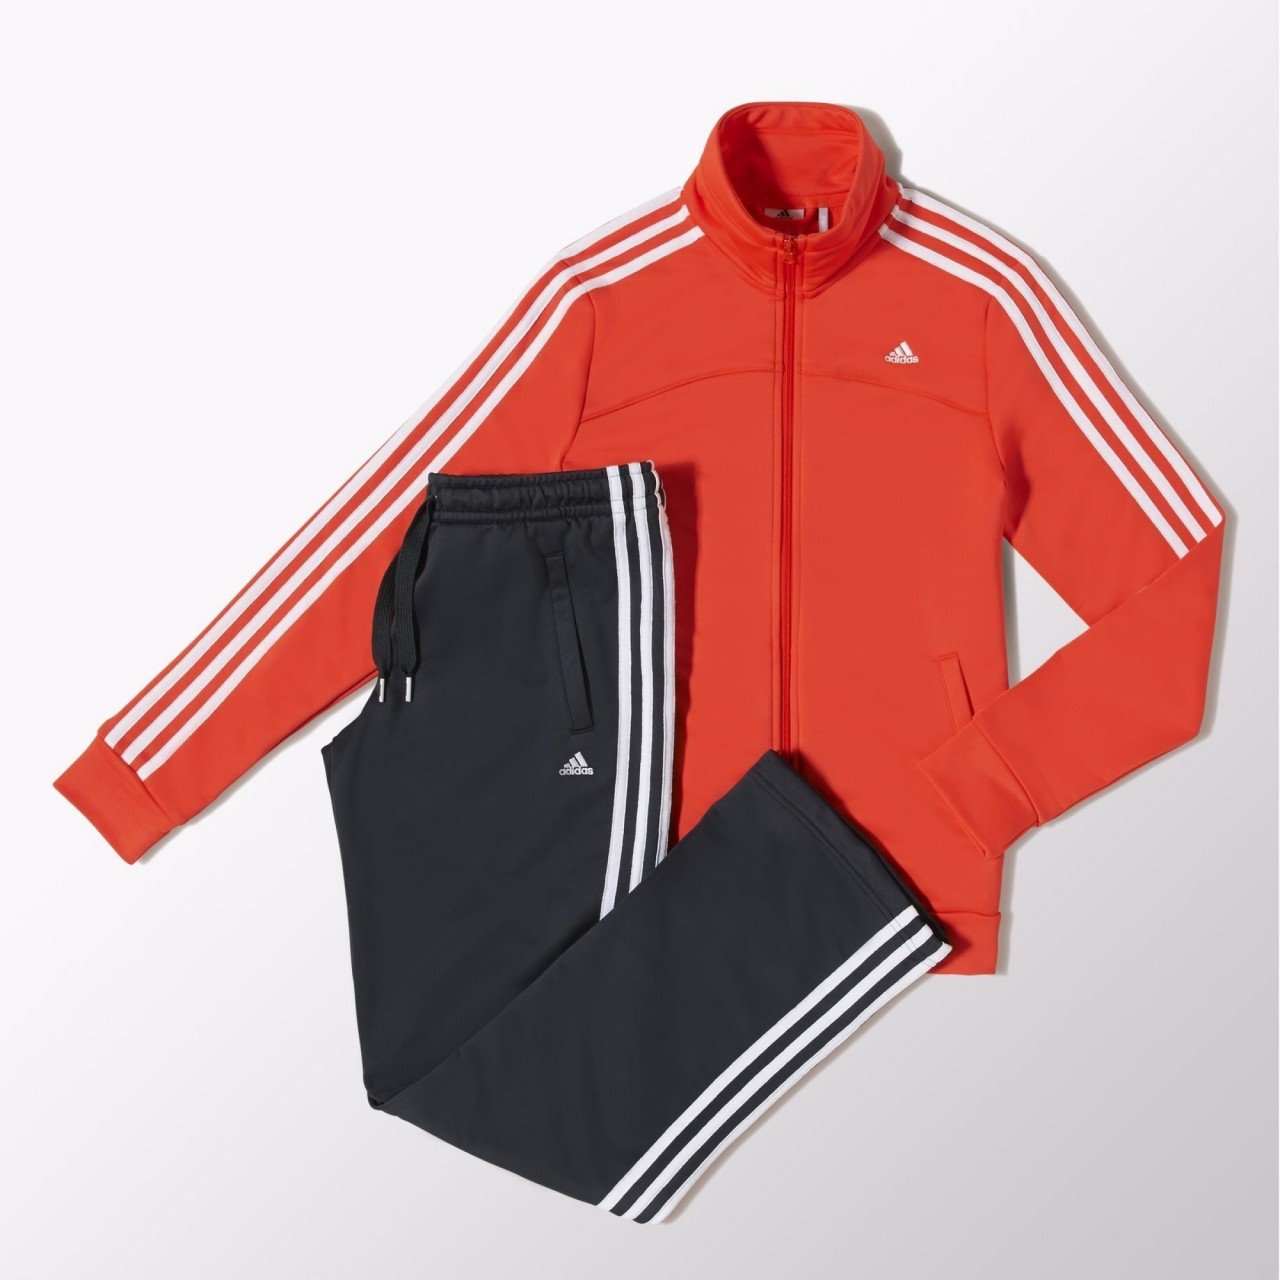 adidas Essential 3 Stripes Knit Suit - Chándal para Mujer, sesore ...